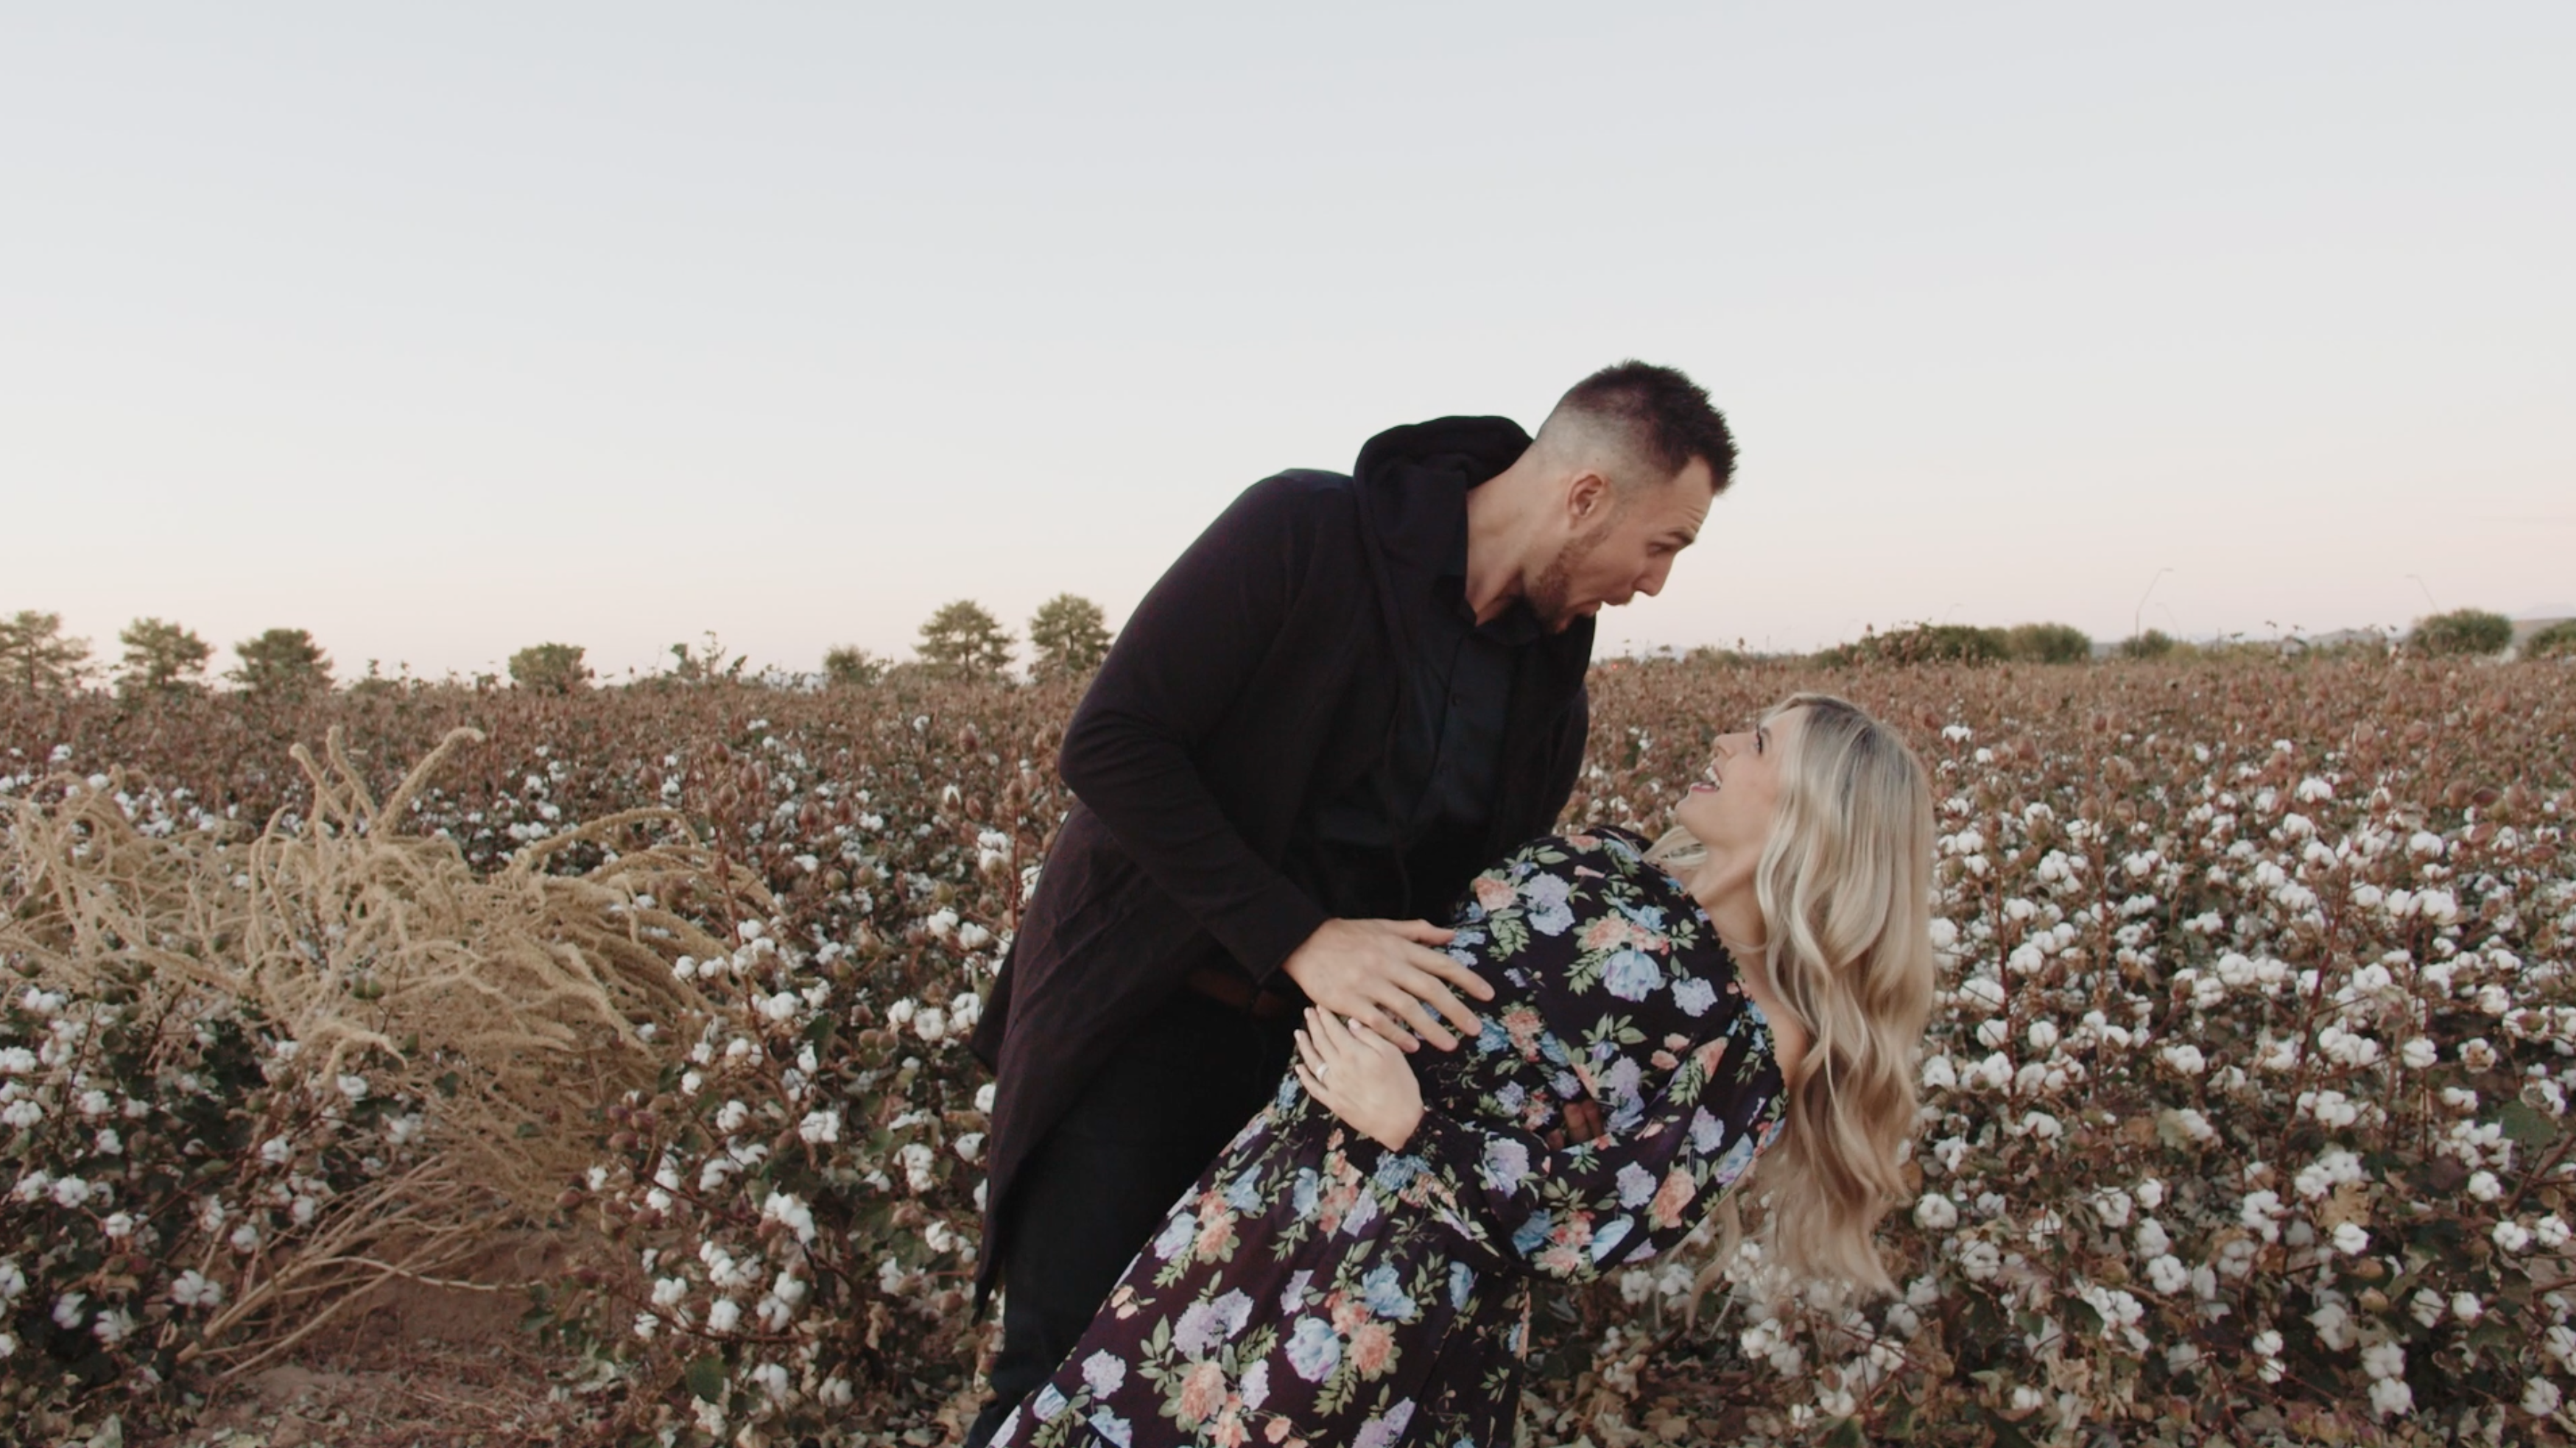 Kailee + Lance | Queen Creek, Arizona | Queen Creek Cotton Fields